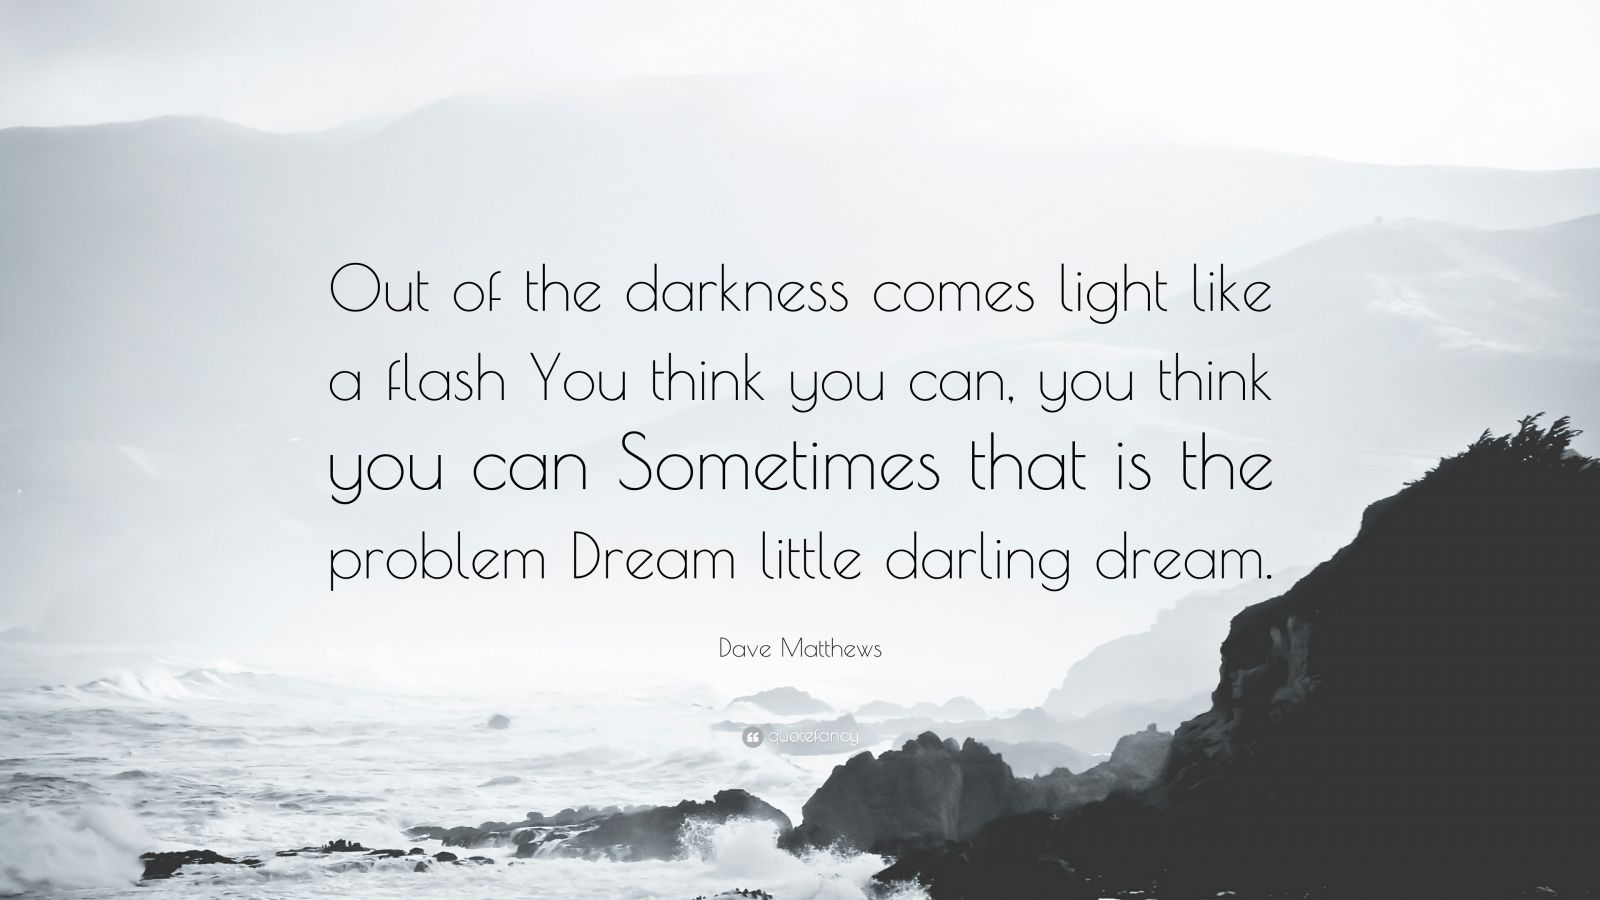 """Dave Matthews Quote: """"Out of the darkness comes light like a flash You think you can, you think you can Sometimes that is the problem Dream little darling dream."""""""